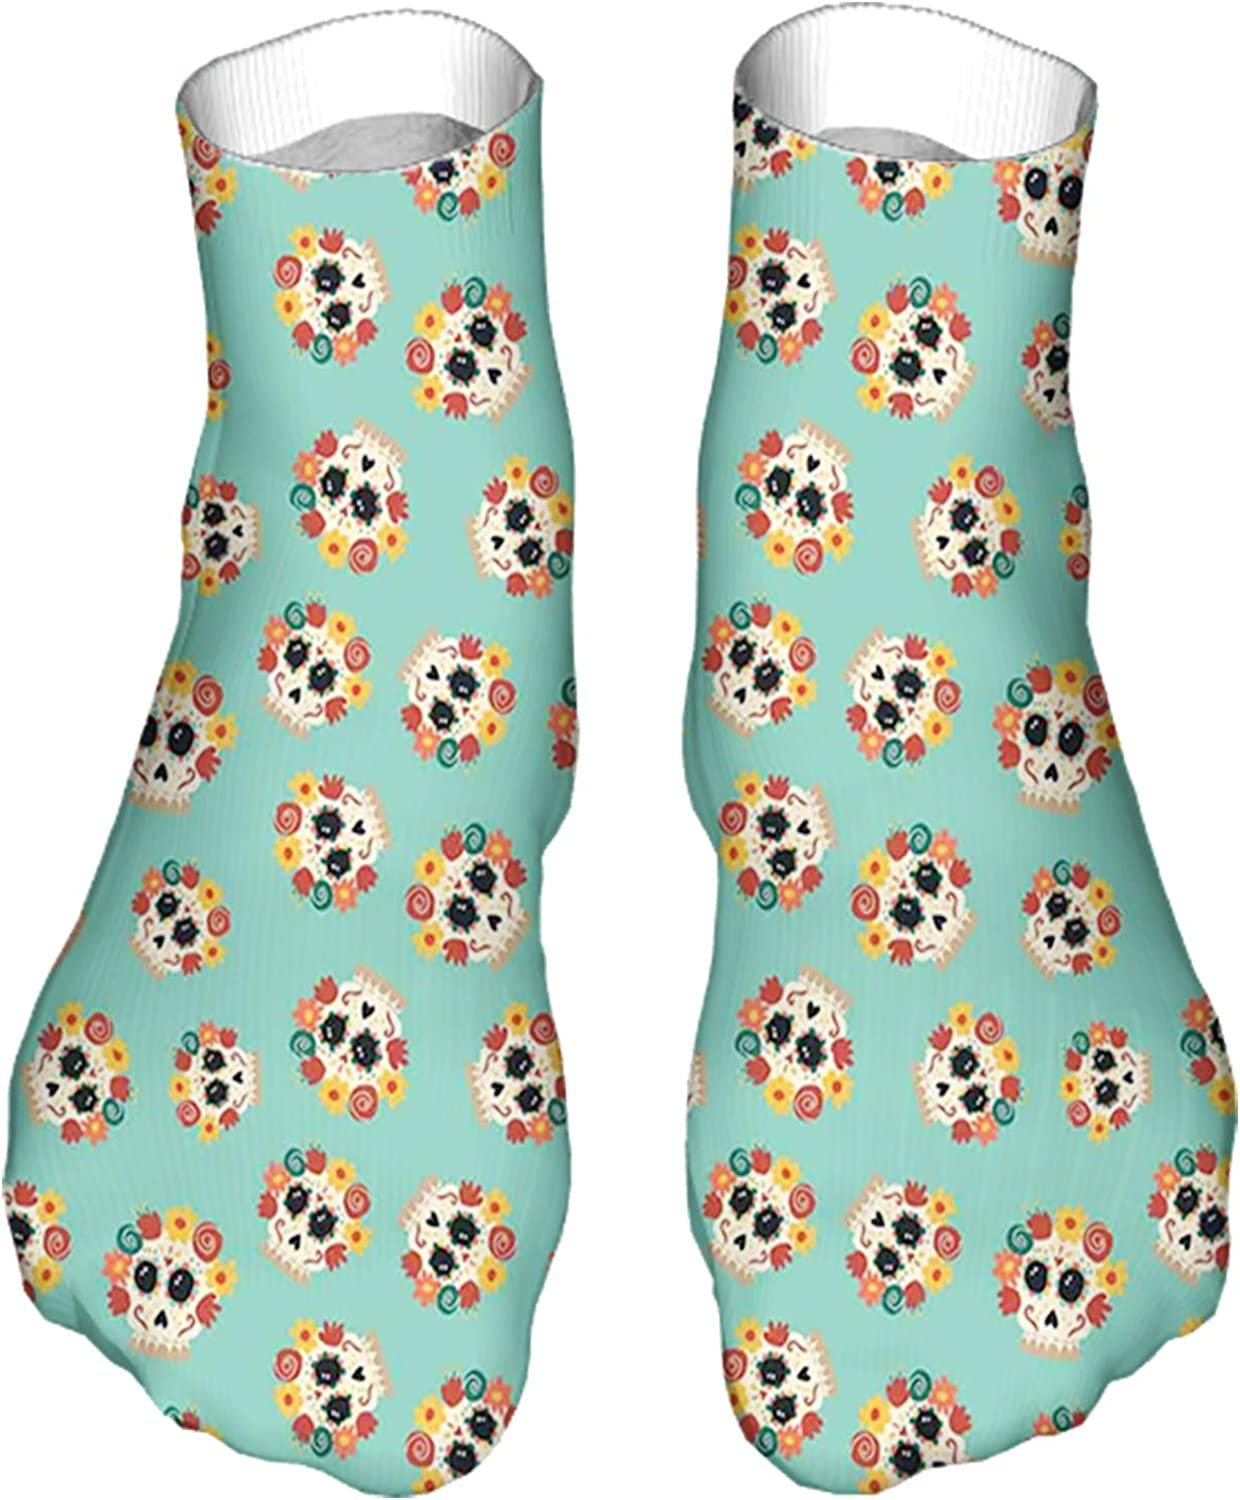 Women's Colorful Patterned Unisex Low Cut/No Show Socks,Latin American Culture and Tradition Theme Skulls